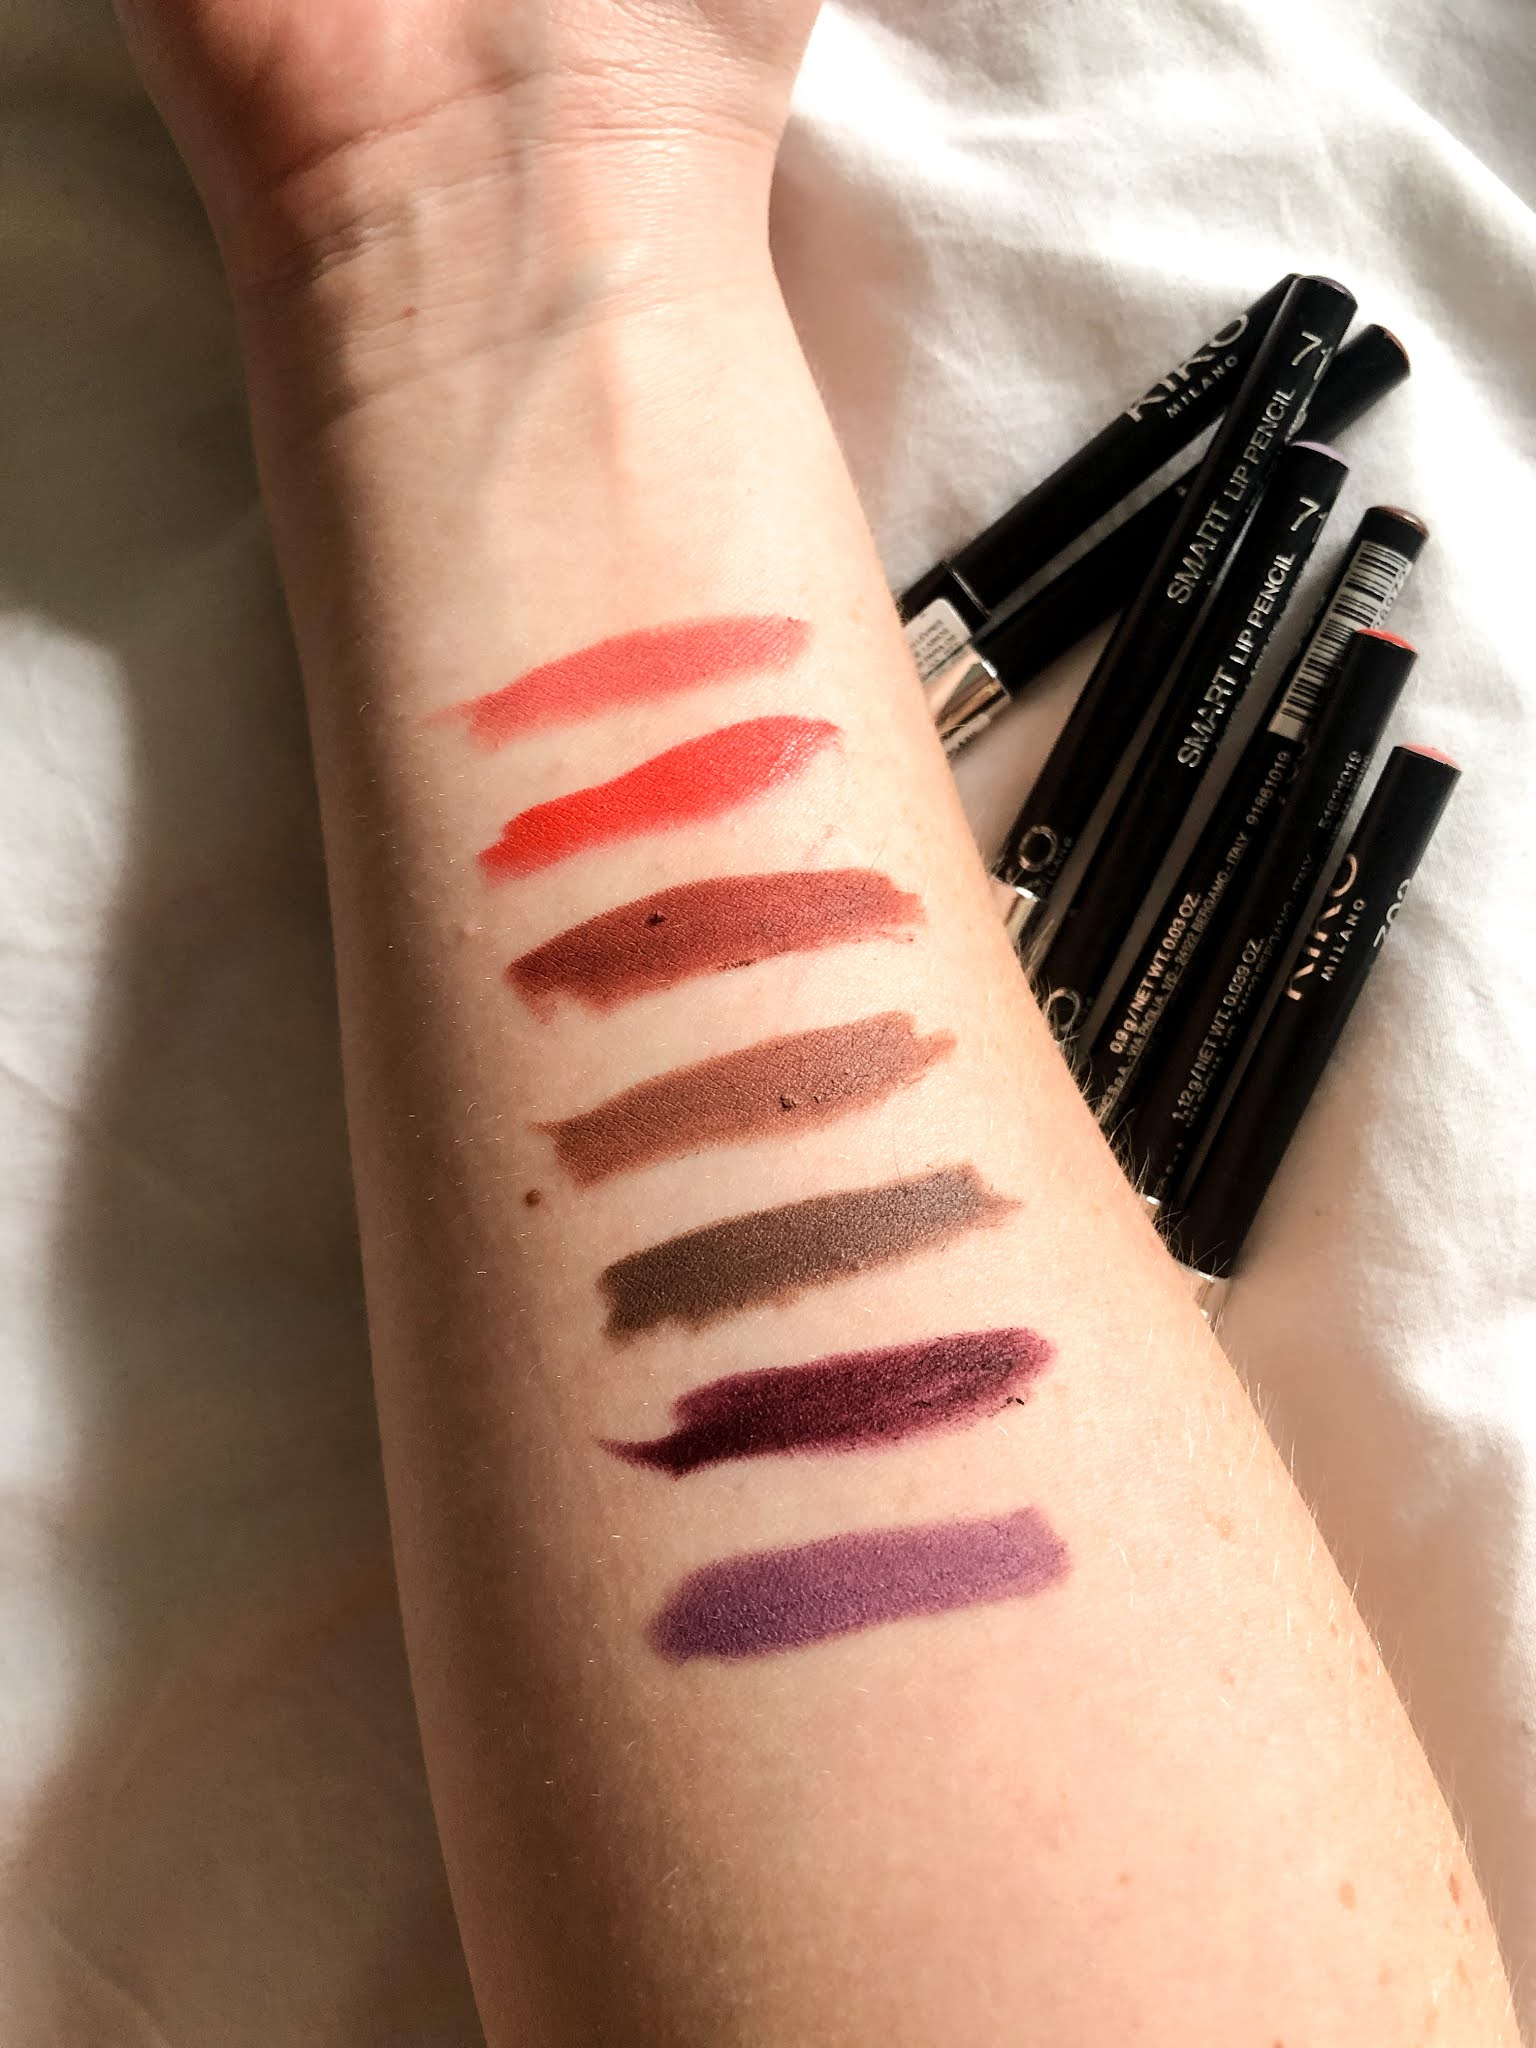 Kiko cosmetics lip pencil review - the best affordable lip liners.